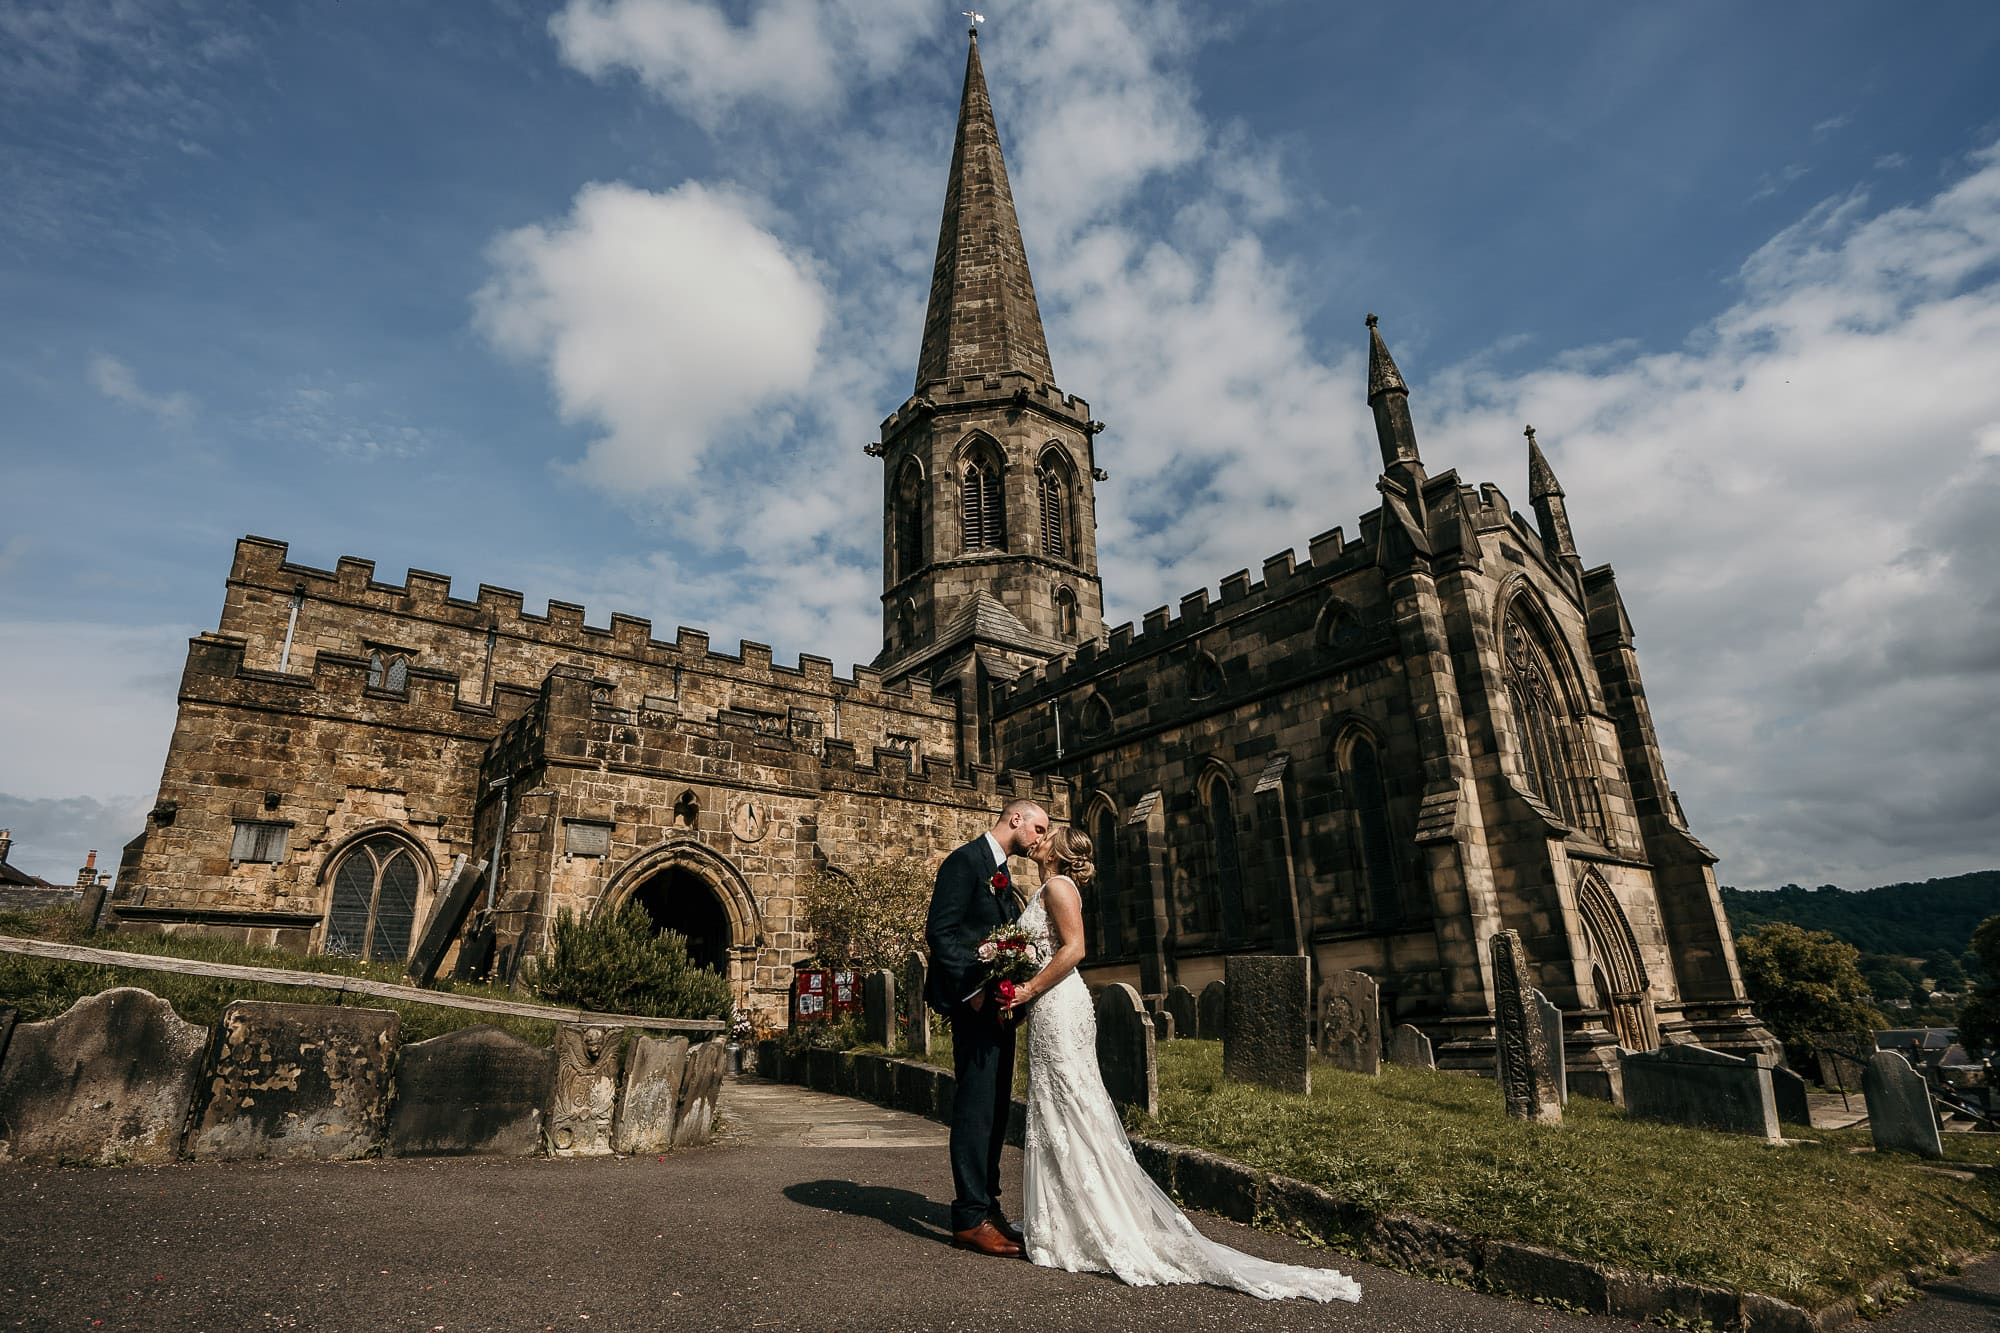 Church at Bakewell on wedding day